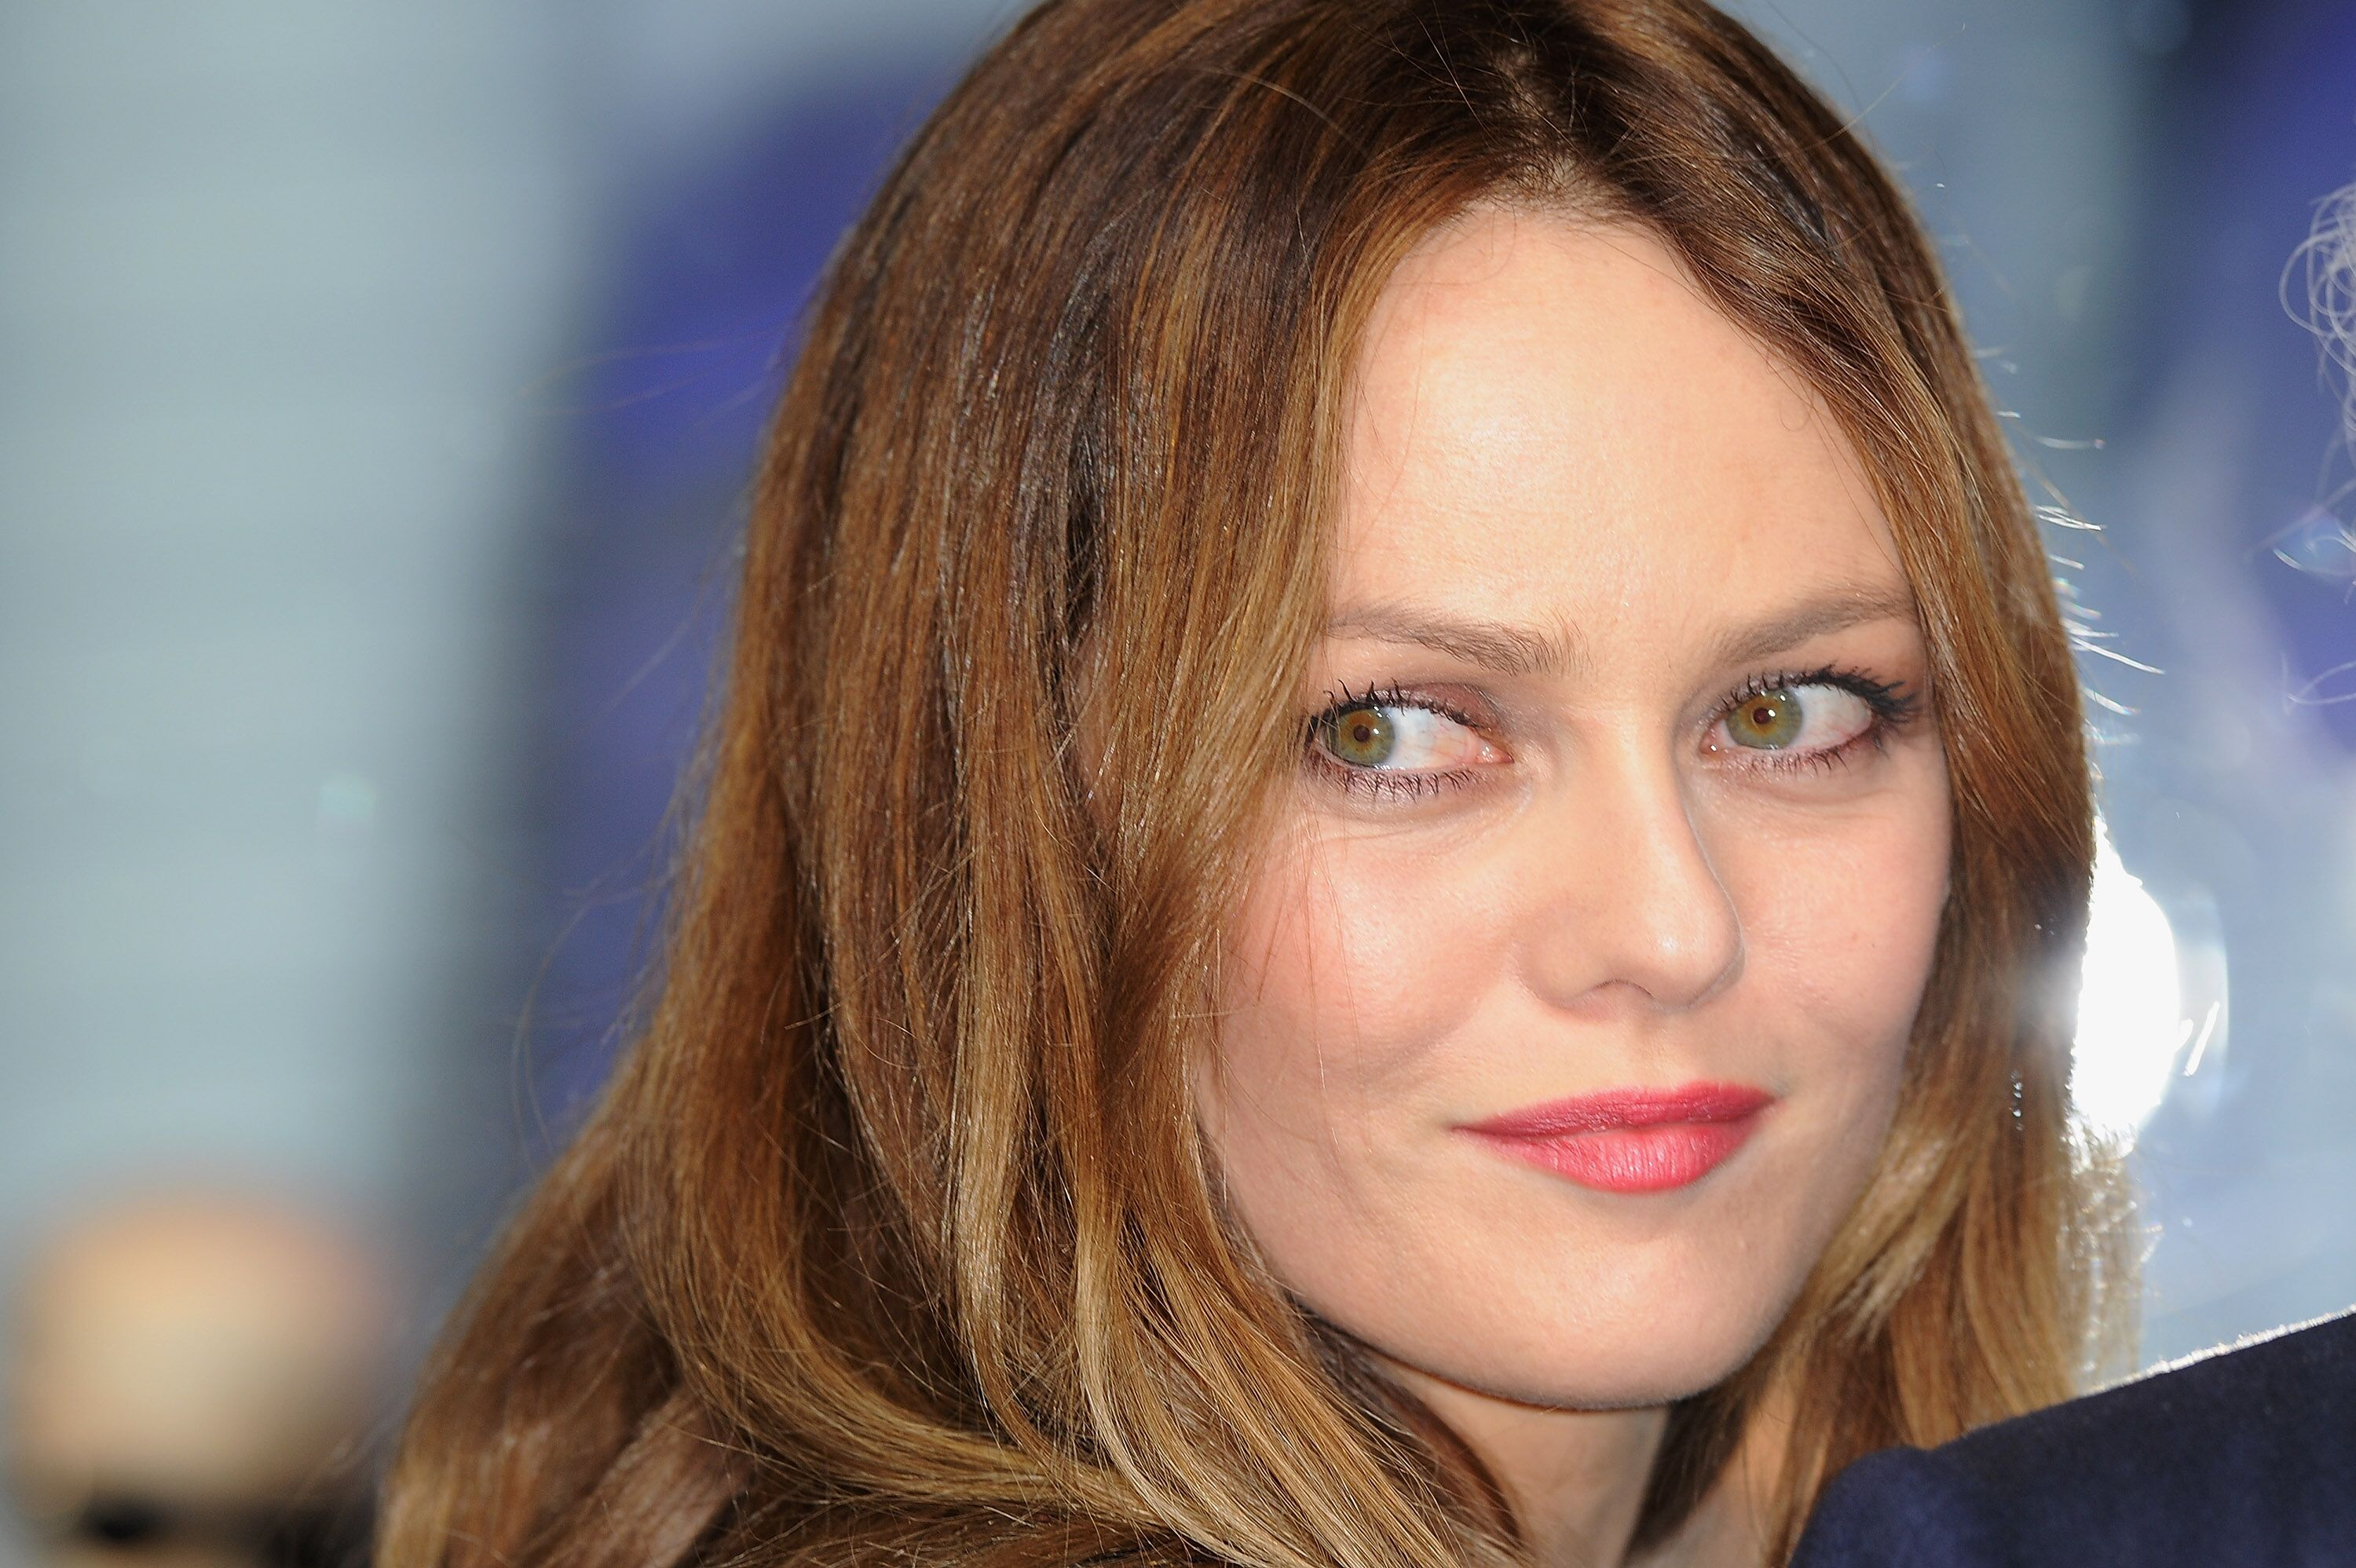 La photo de Vanessa Paradis | Source: Getty Images / Global Ukraine